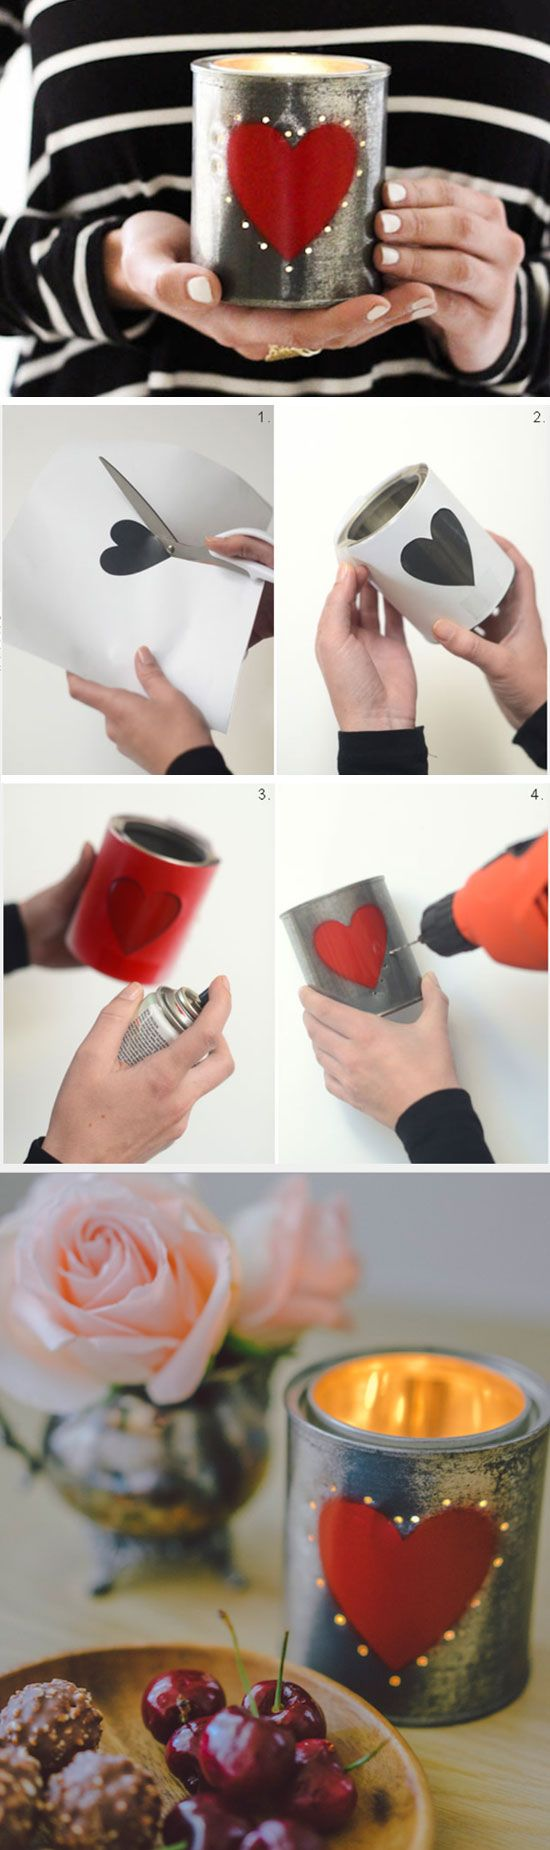 219 best Valentines images on Pinterest | Art ideas for teens ...